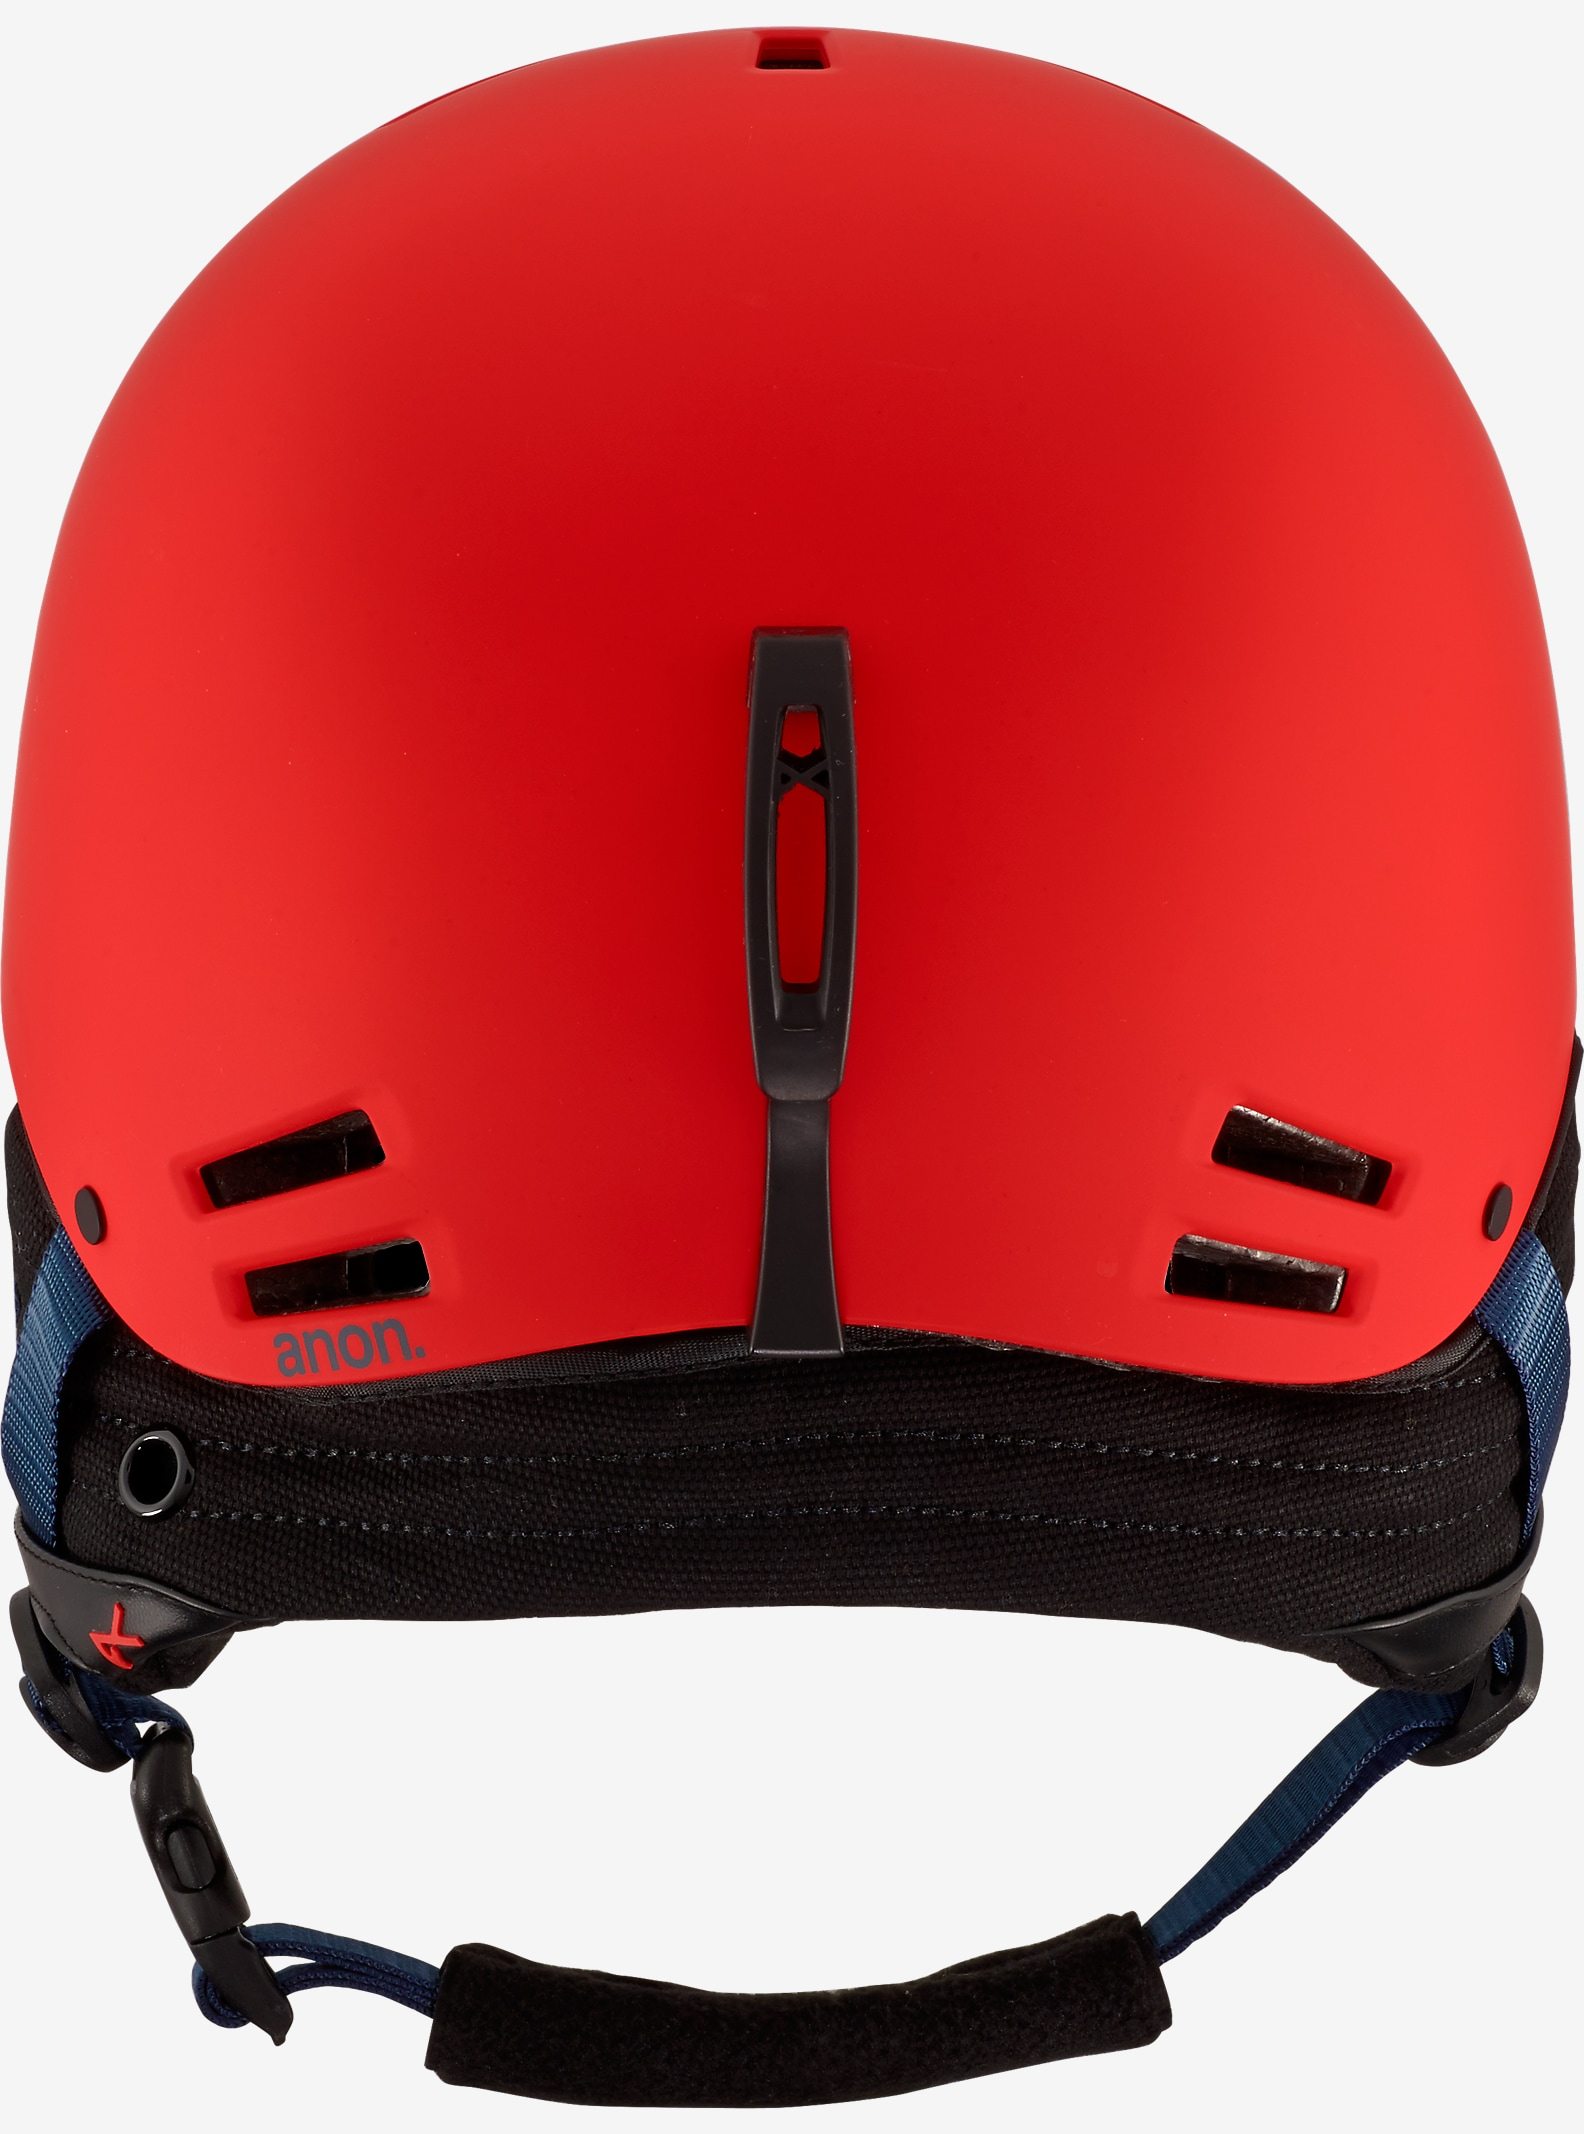 anon. Raider Helmet shown in Red